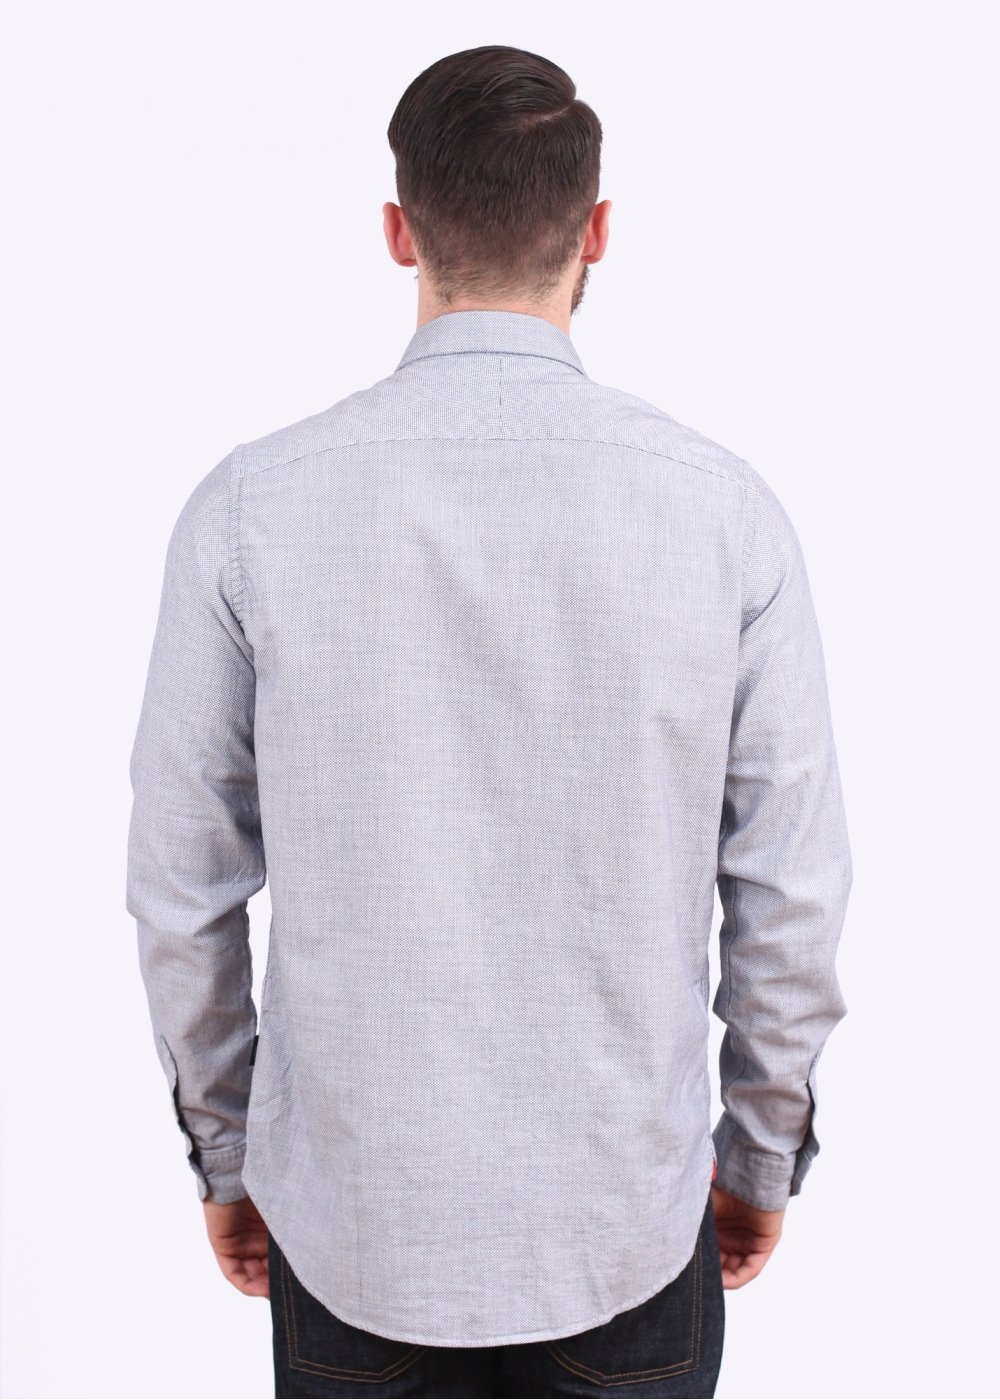 Paul smith jeans long sleeve pattern shirt navy for Long sleeve shirt pattern